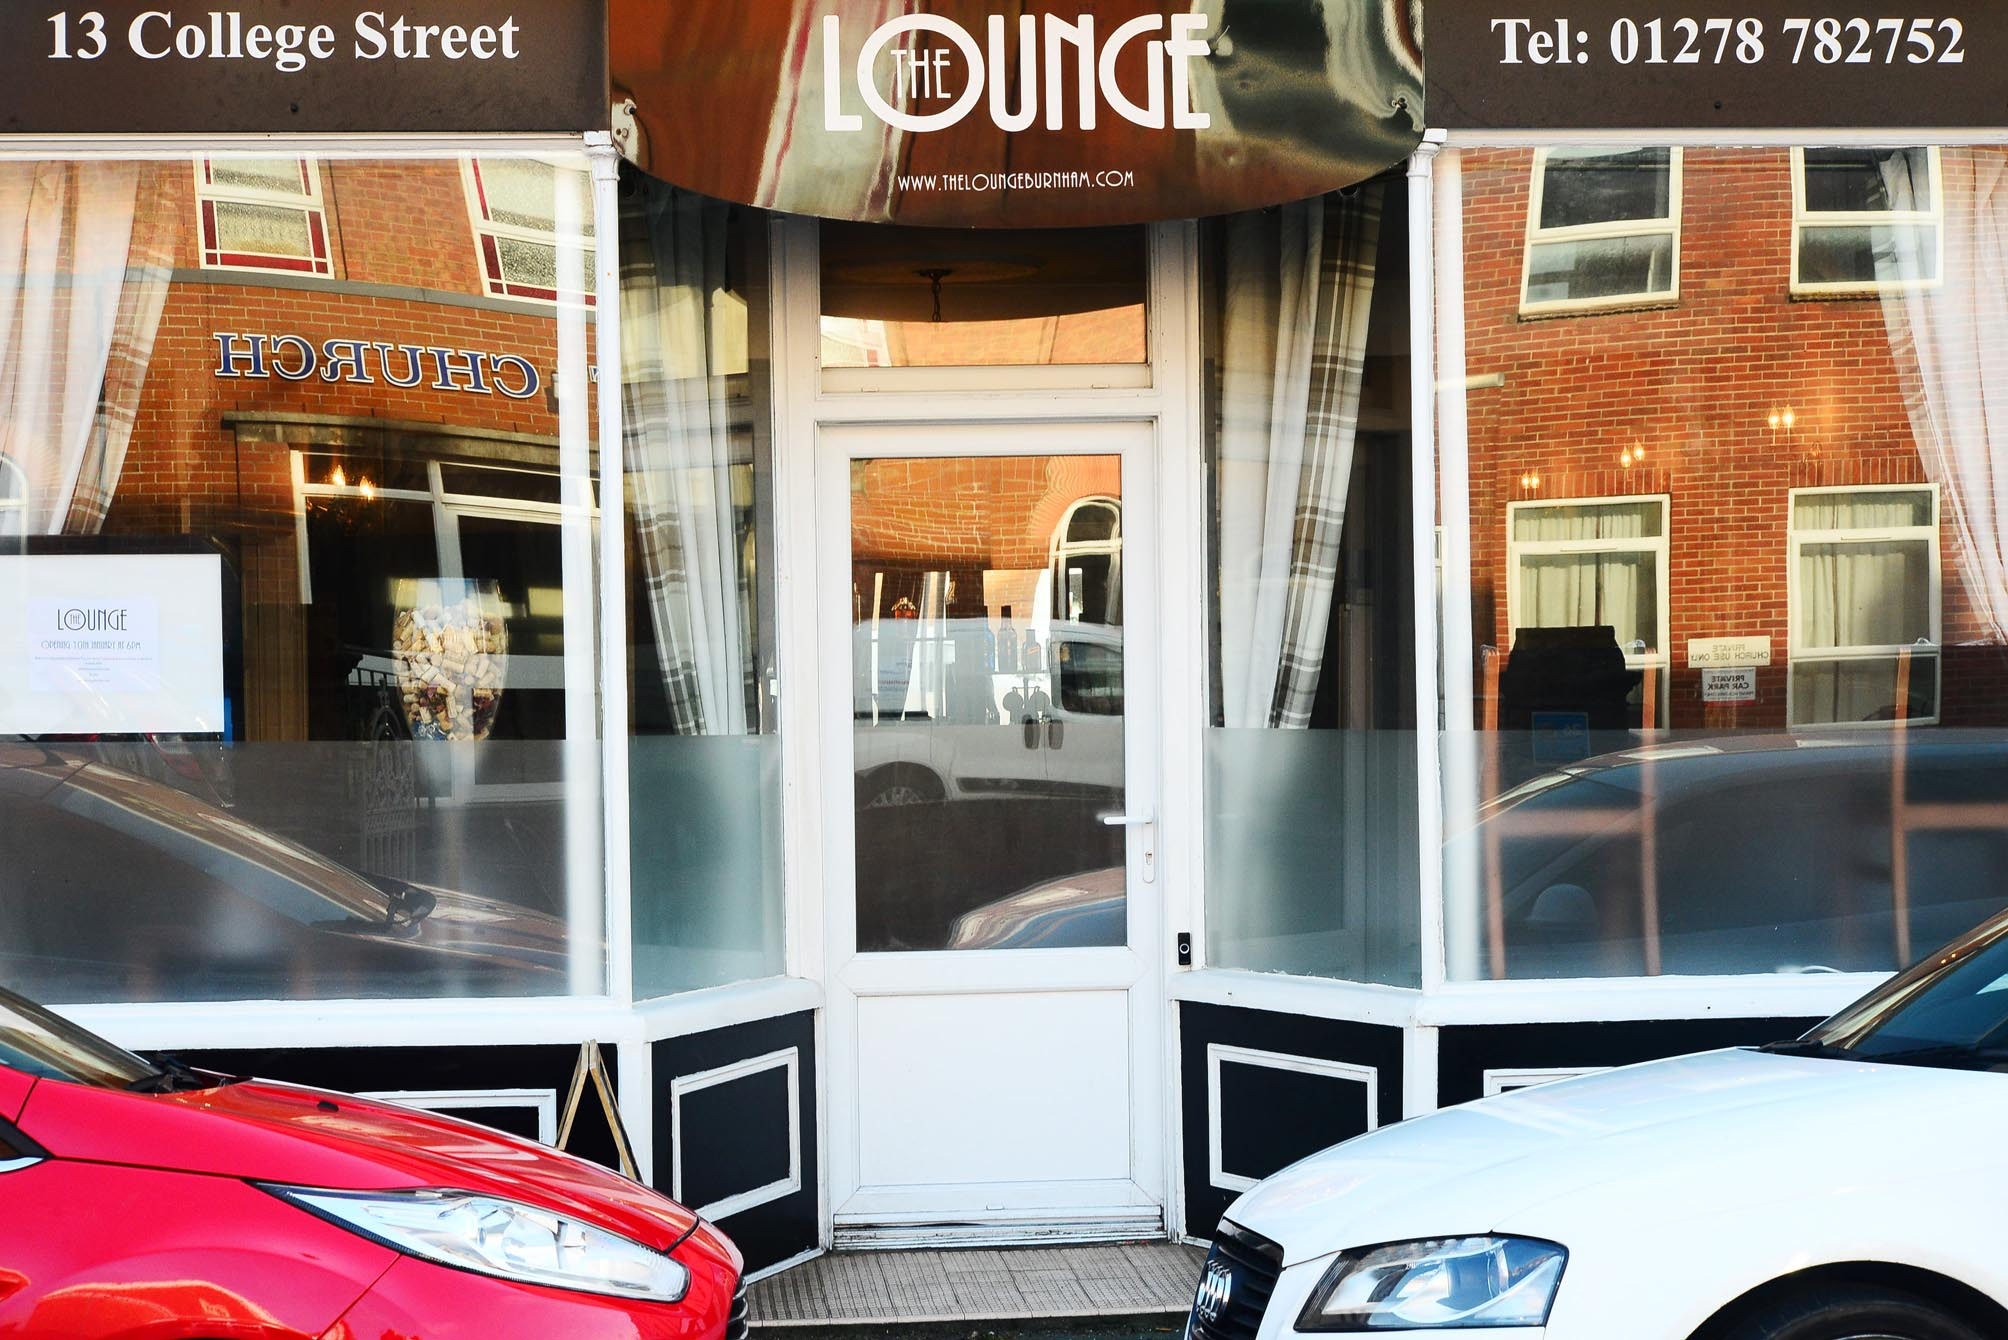 CLOSED: The Lounge in Burnham-on-Sea